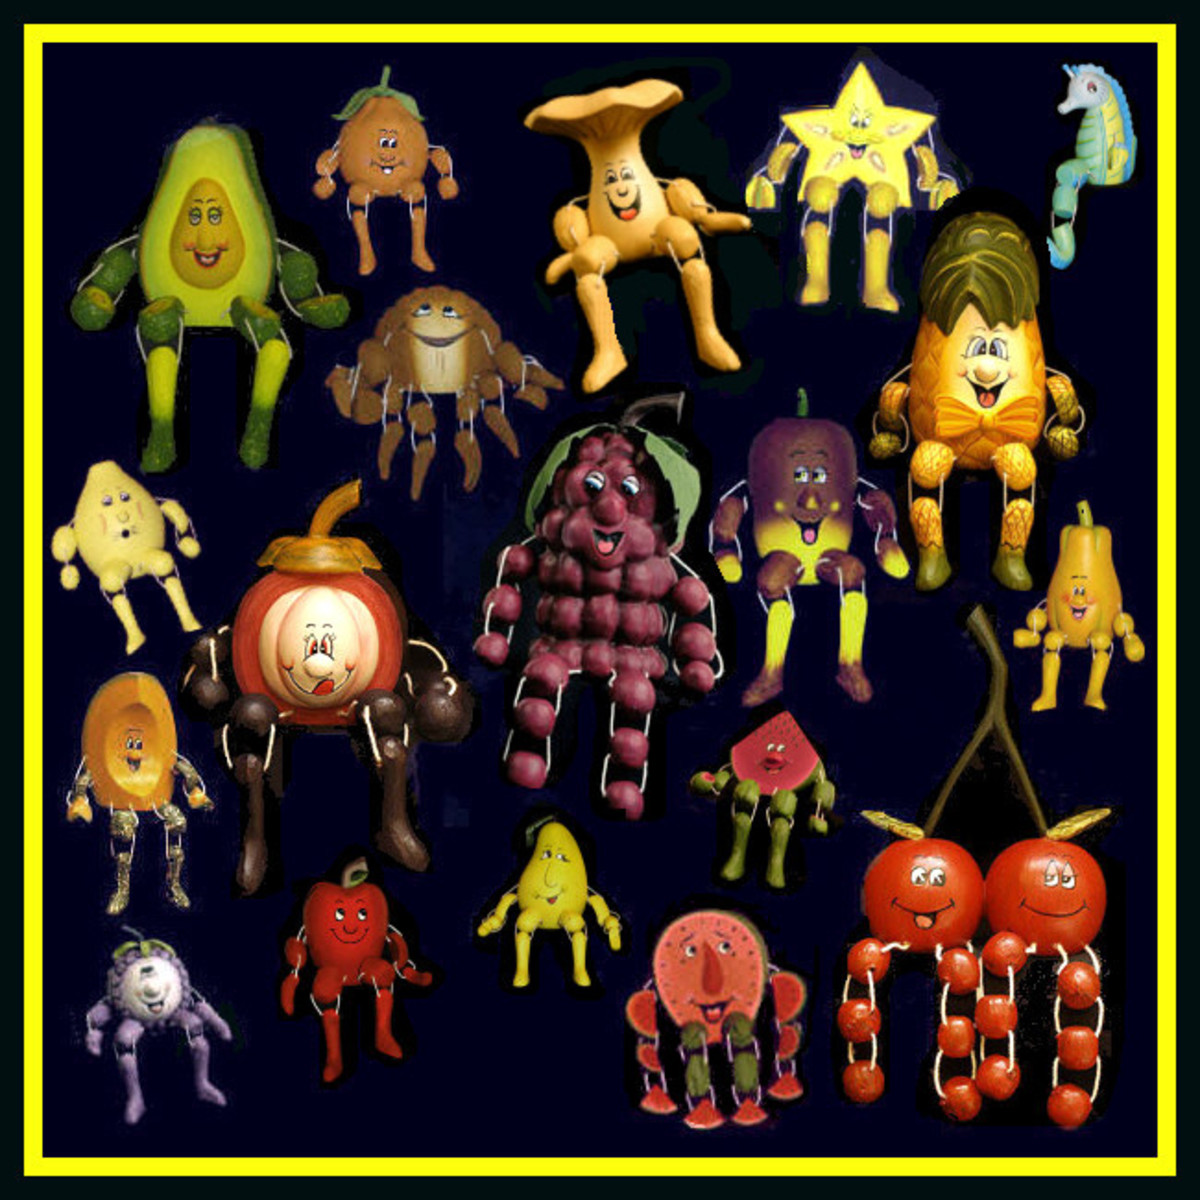 Collage of Woodkins figurines, by the author